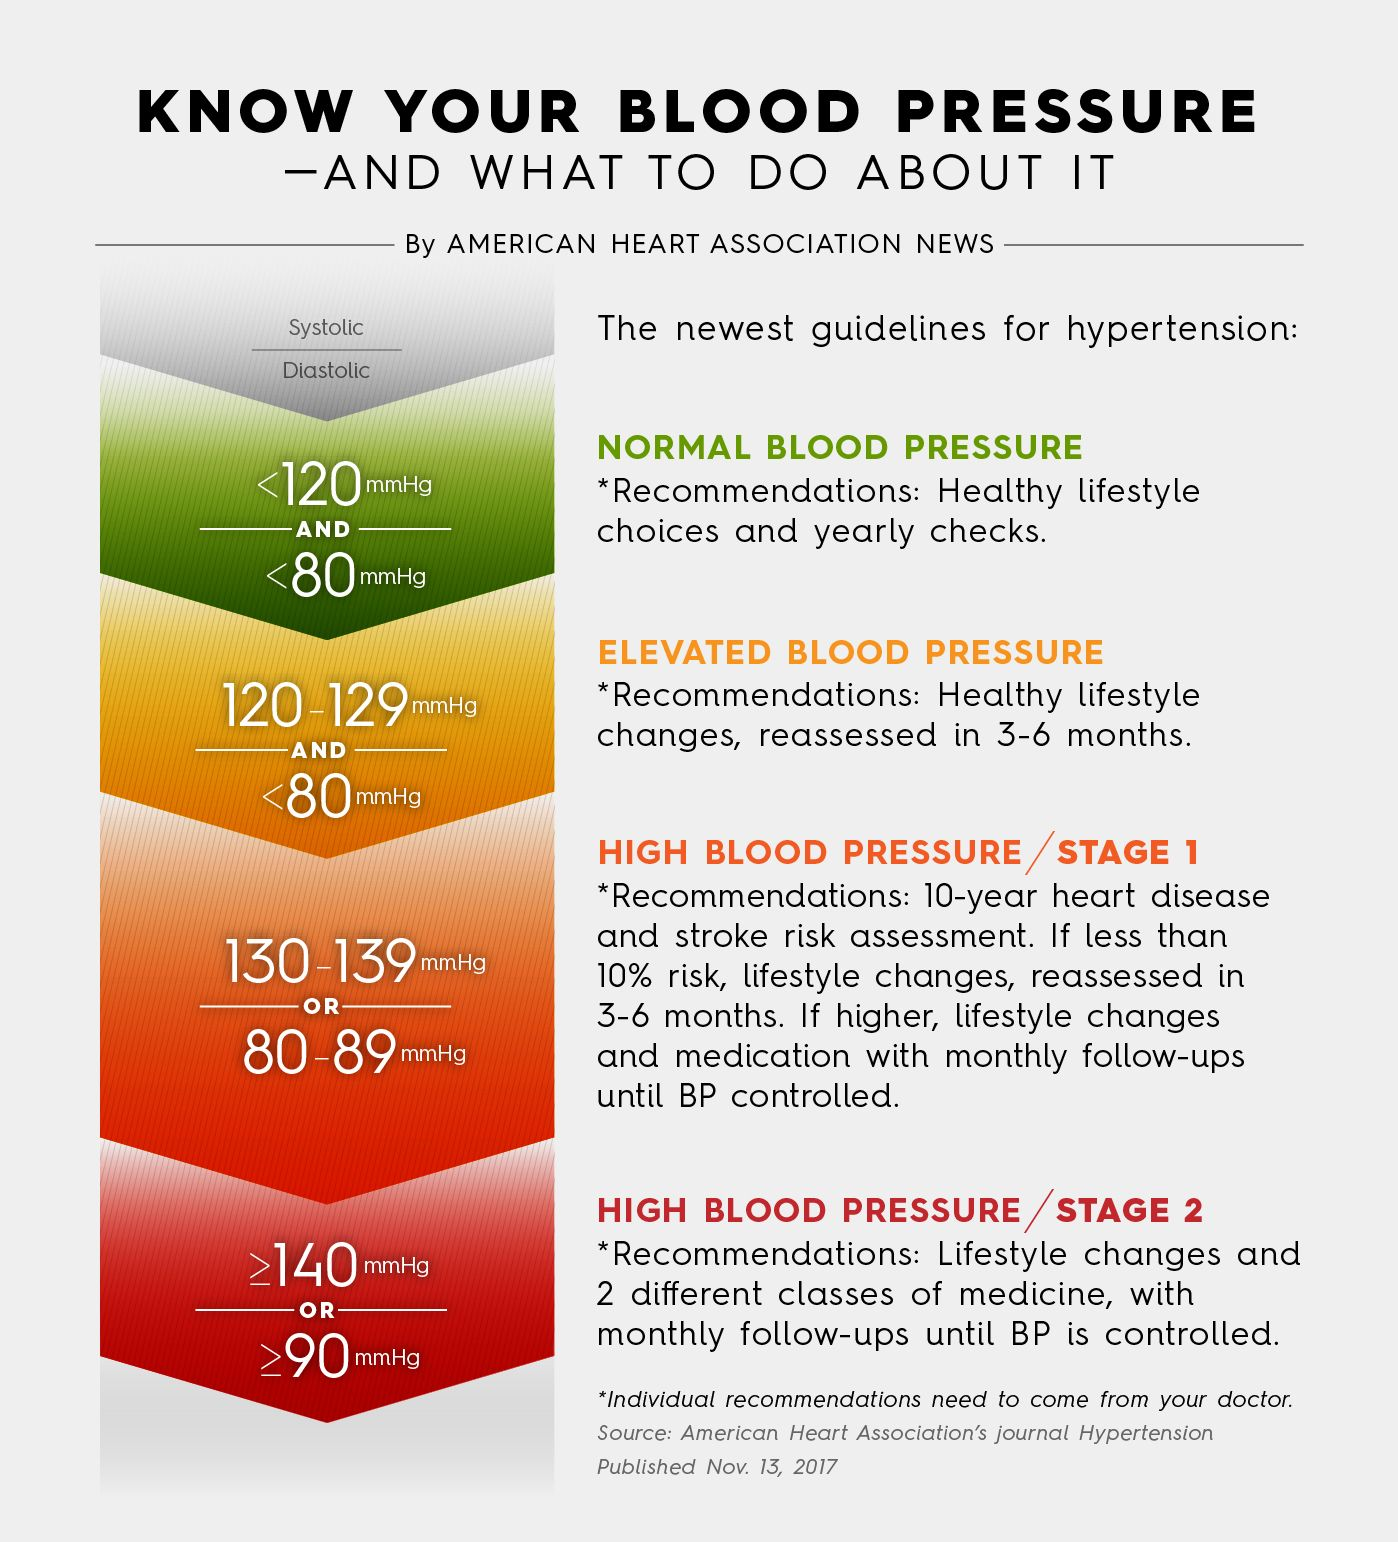 Will new blood pressure guidelines cost Americans?